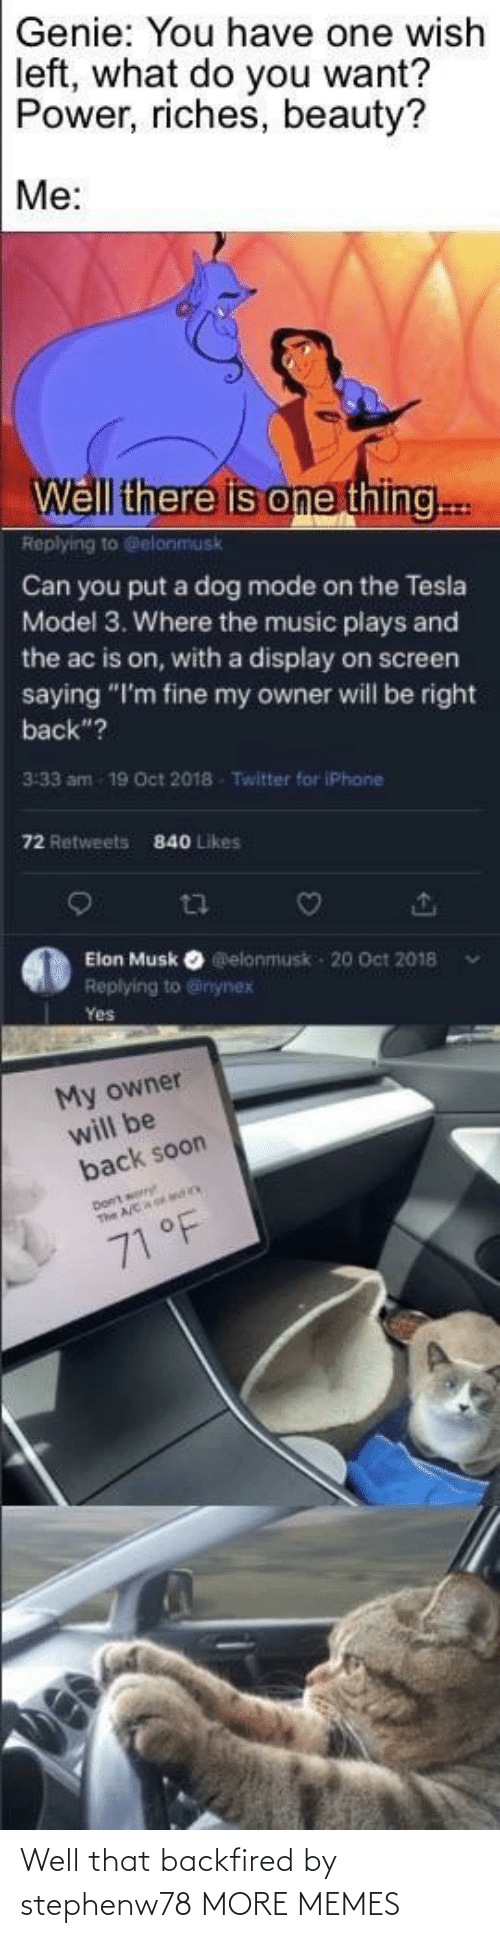 "owner: Genie: You have one wish  left, what do you want?  Power, riches, beauty?  Me:  Well there is one thing..  Replying to Gelonmusk  Can you put a dog mode on the Tesla  Model 3. Where the music plays and  the ac is on, with a display on screen  saying ""I'm fine my owner will be right  back""?  3:33 am  19 Oct 2018  Twitter for iPhane  72 Retweets  840 Likes  Elon Musk O elonmusk - 20 Oct 2018  Replying to @inynex  Yes  My owner  will be  back soon  71 °F Well that backfired by stephenw78 MORE MEMES"